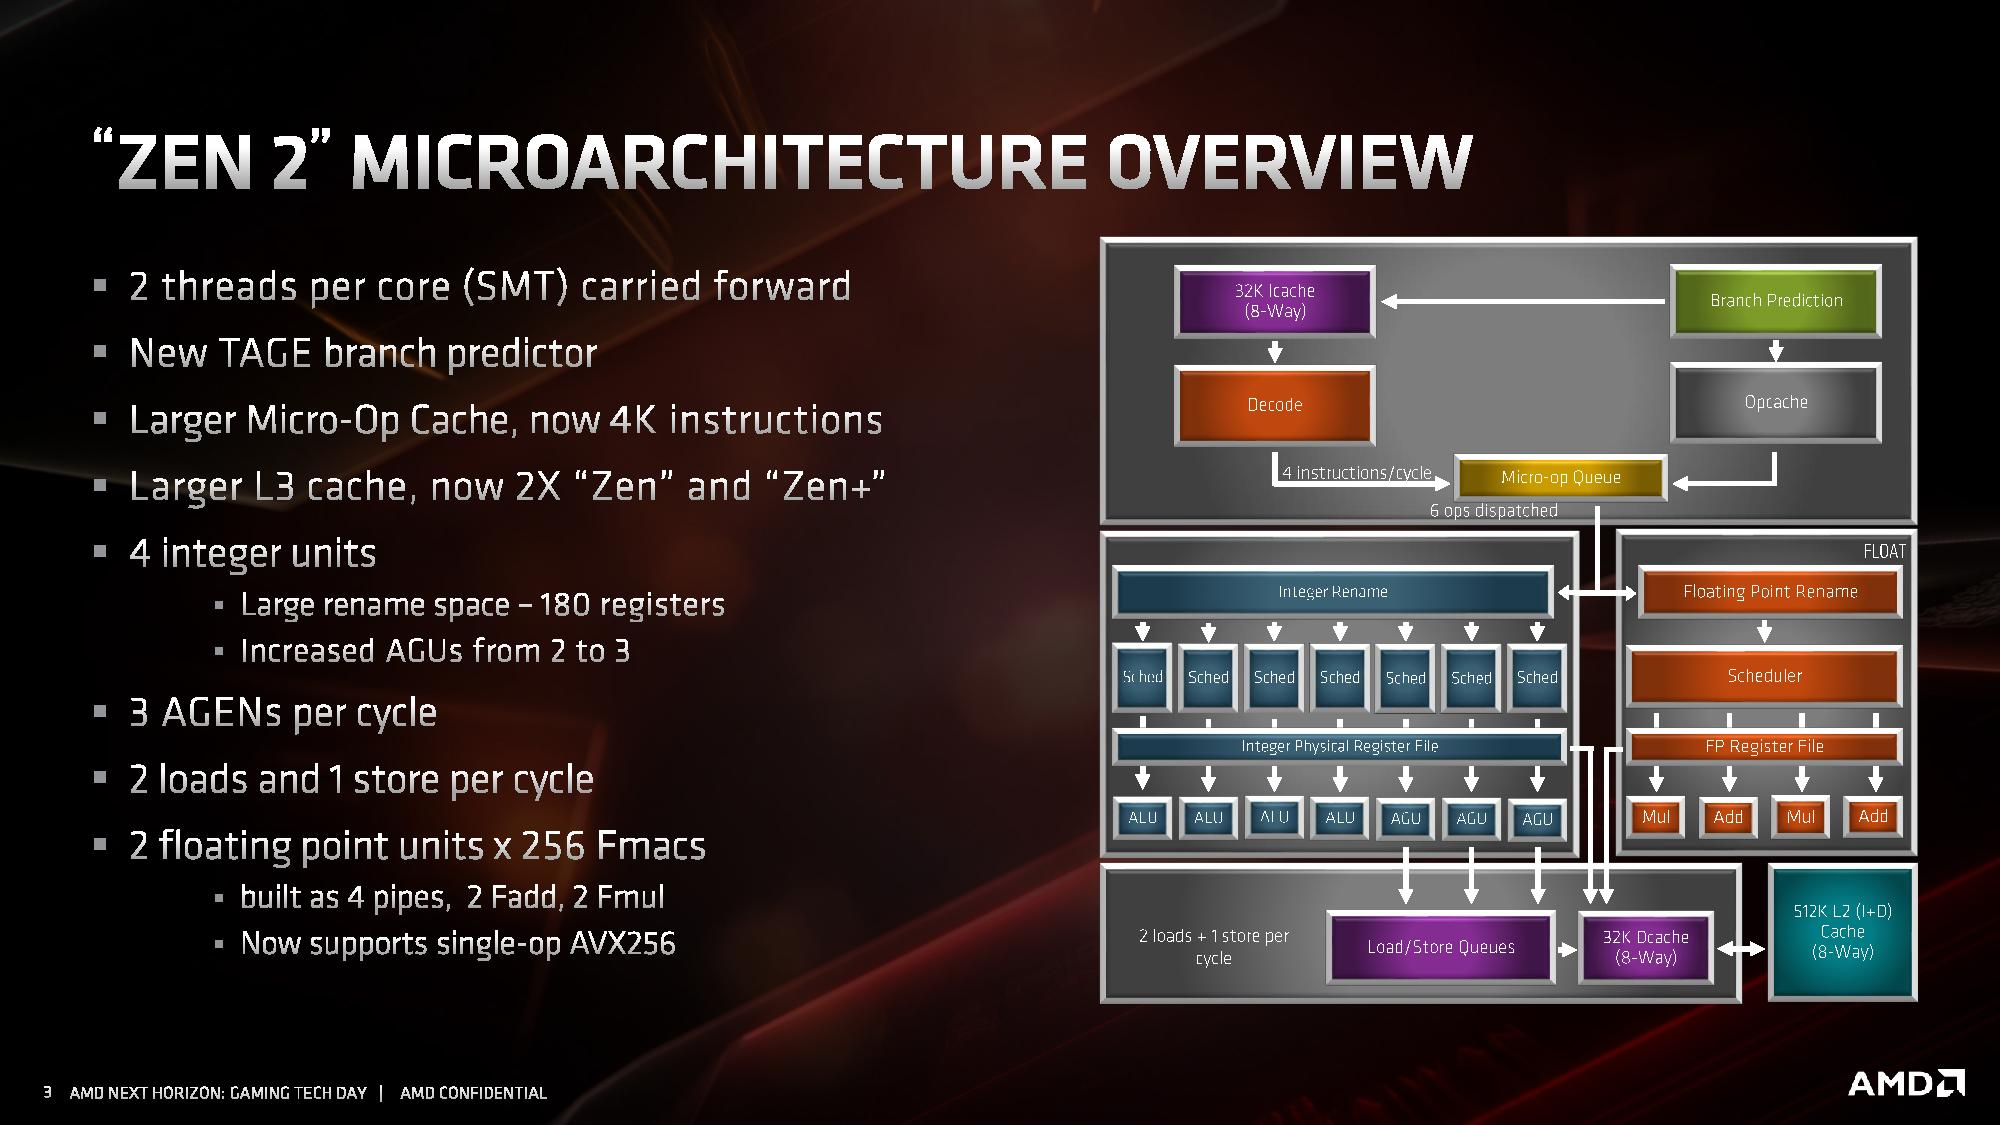 AMD Zen 2 Microarchitecture Overview: The Quick Analysis